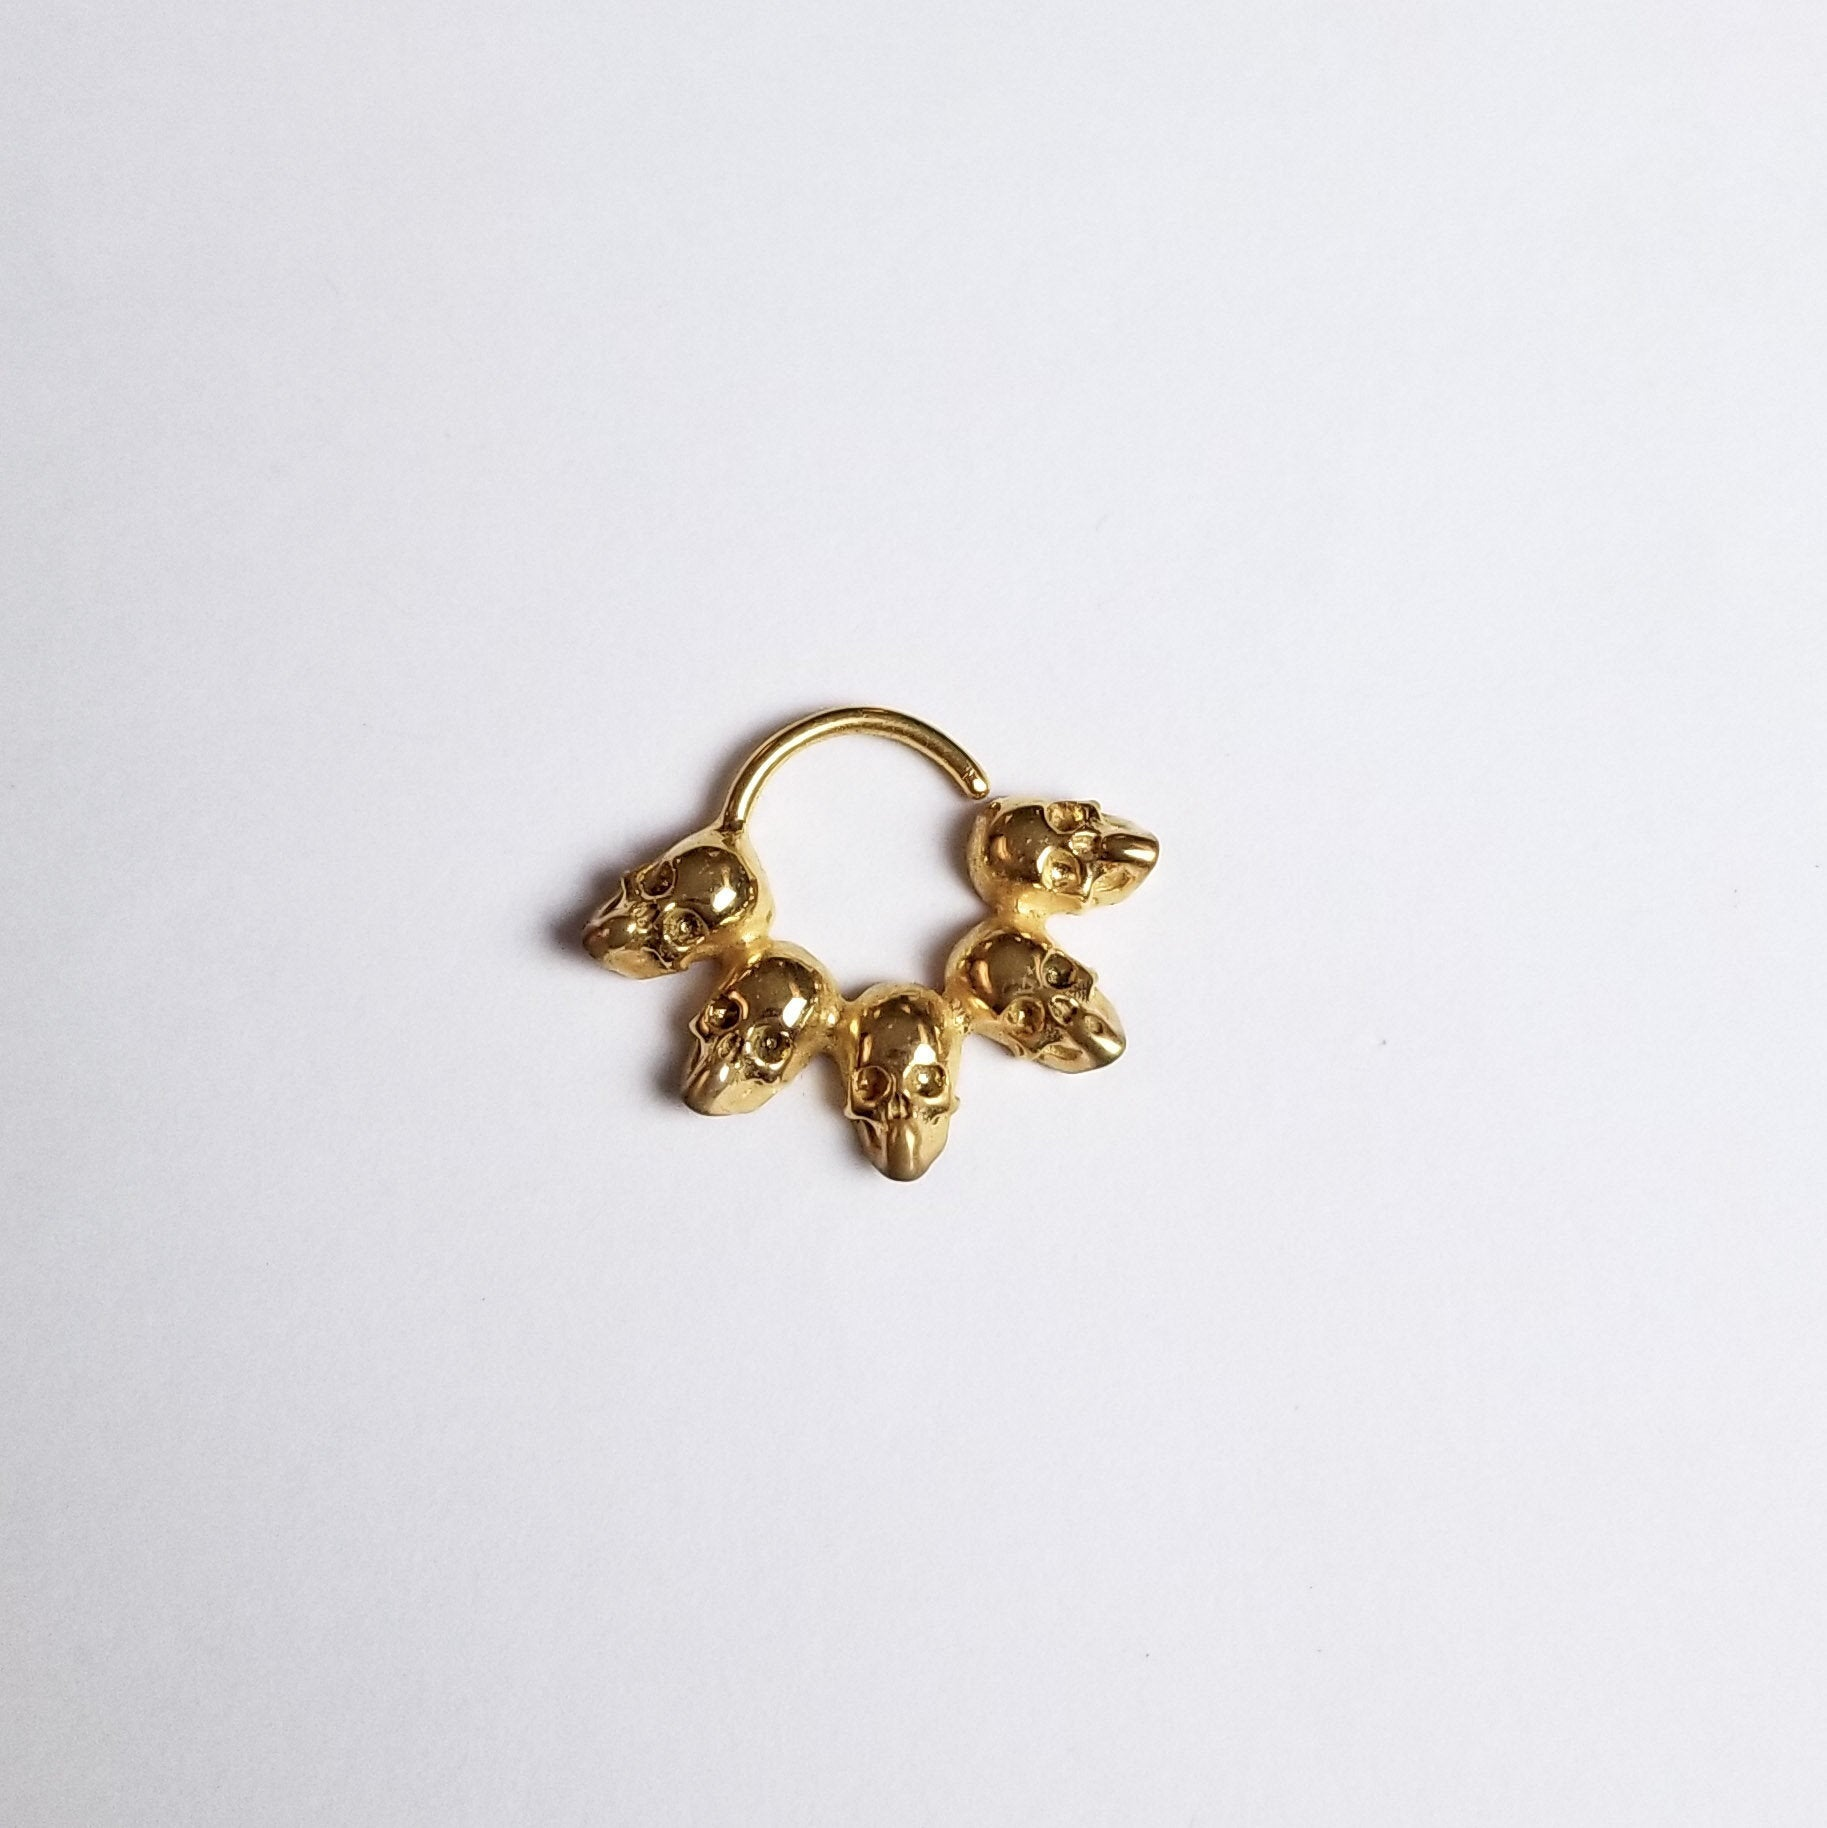 14K Yellow Gold Statement Skull Septum-Septum-Inchoo Bijoux-Inchoo Bijoux